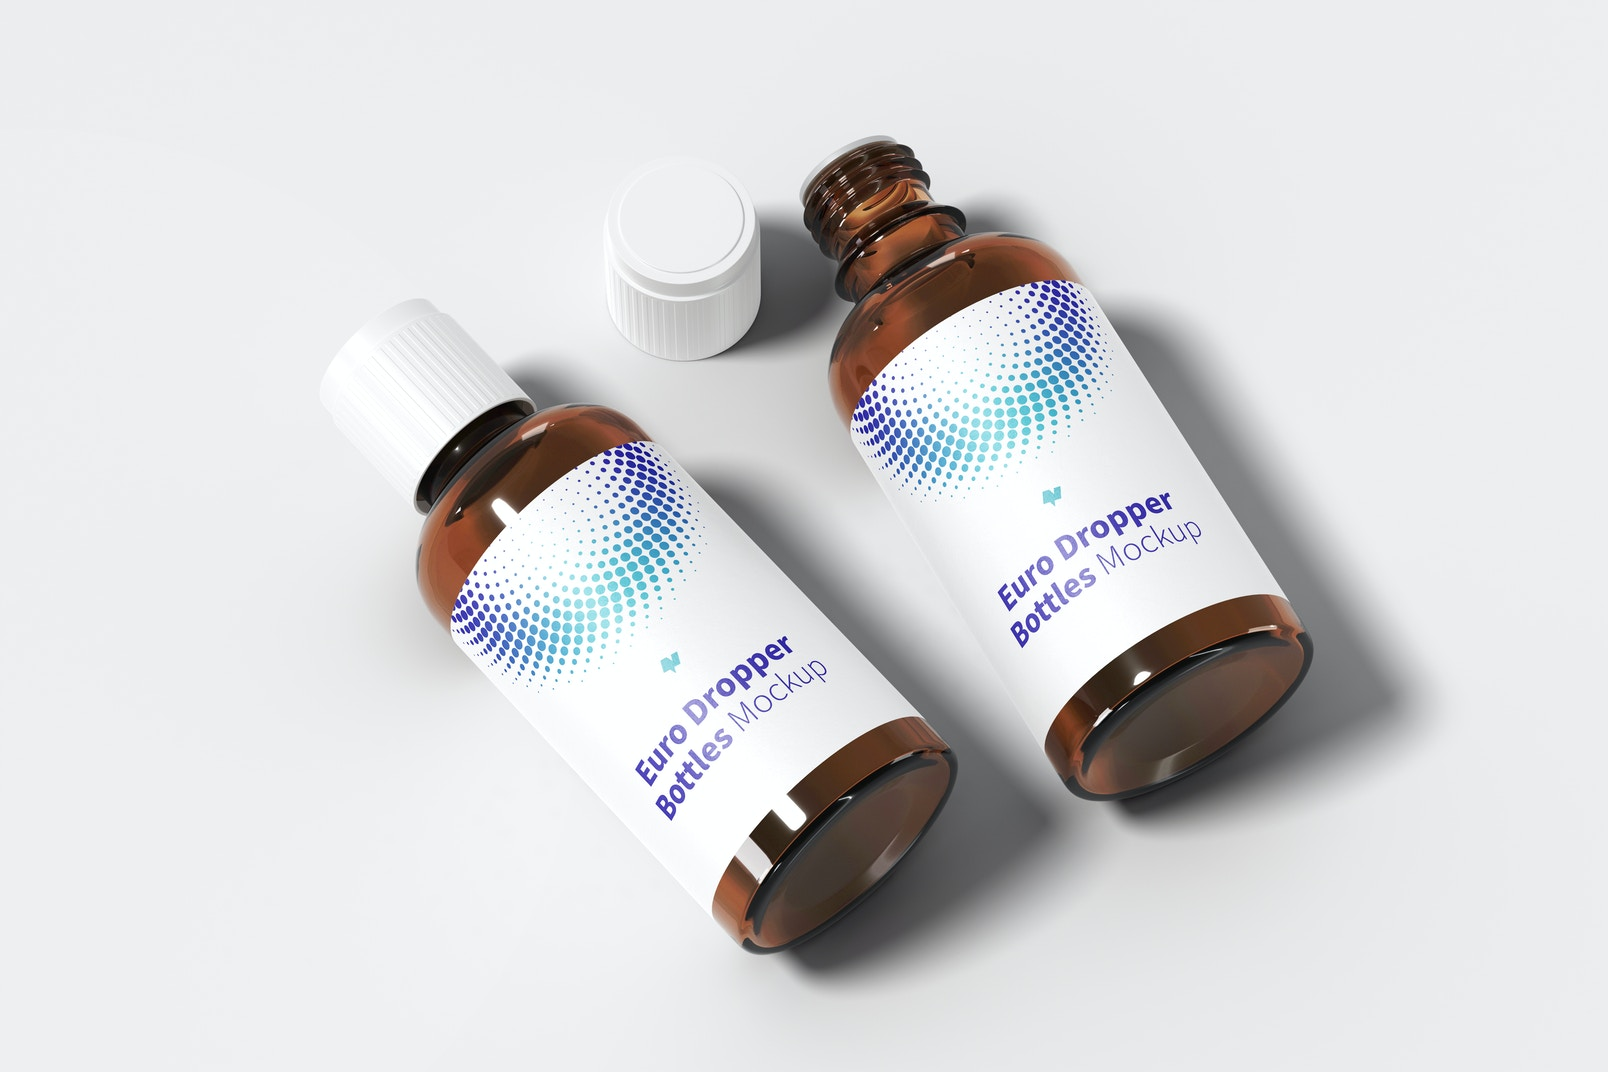 Euro Dropper Bottles with Orifice Reducers Mockup, Perspective